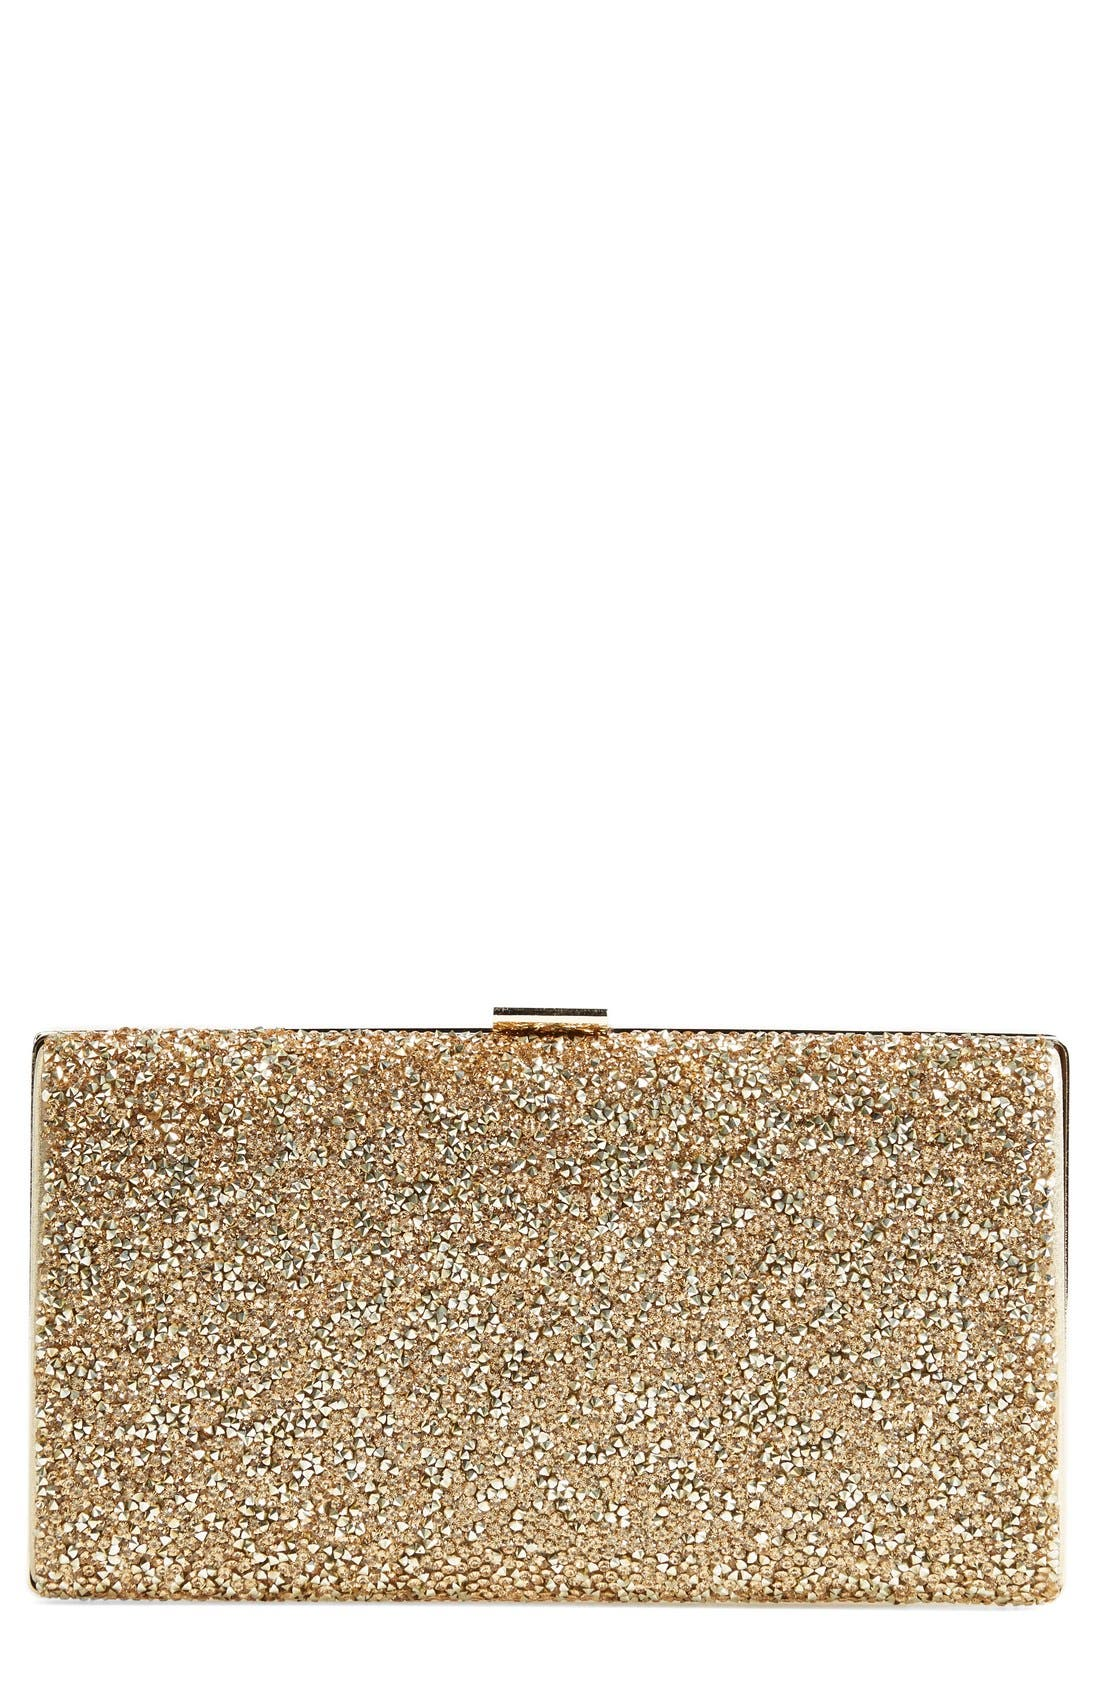 Alternate Image 1 Selected - Natasha Couture Crystal Clutch